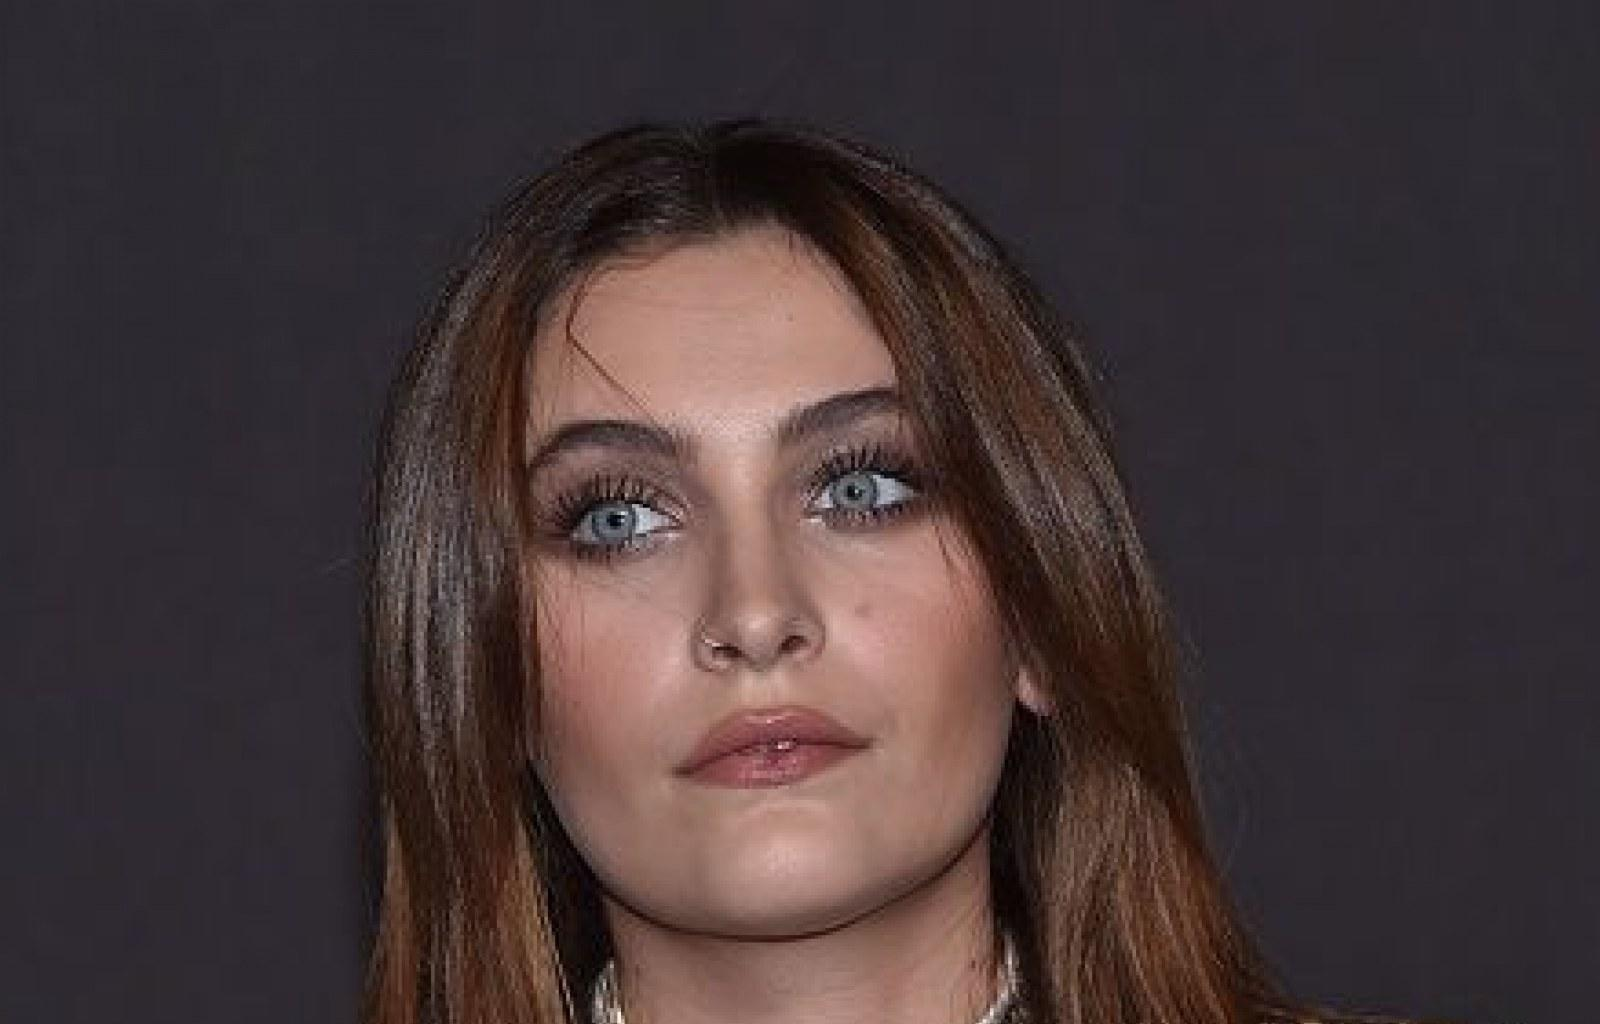 Paris Jackson Says Her Dad Michael Jackson Would Always Encourage Her To Do What Makes Her Happy - Follow Your Dreams!